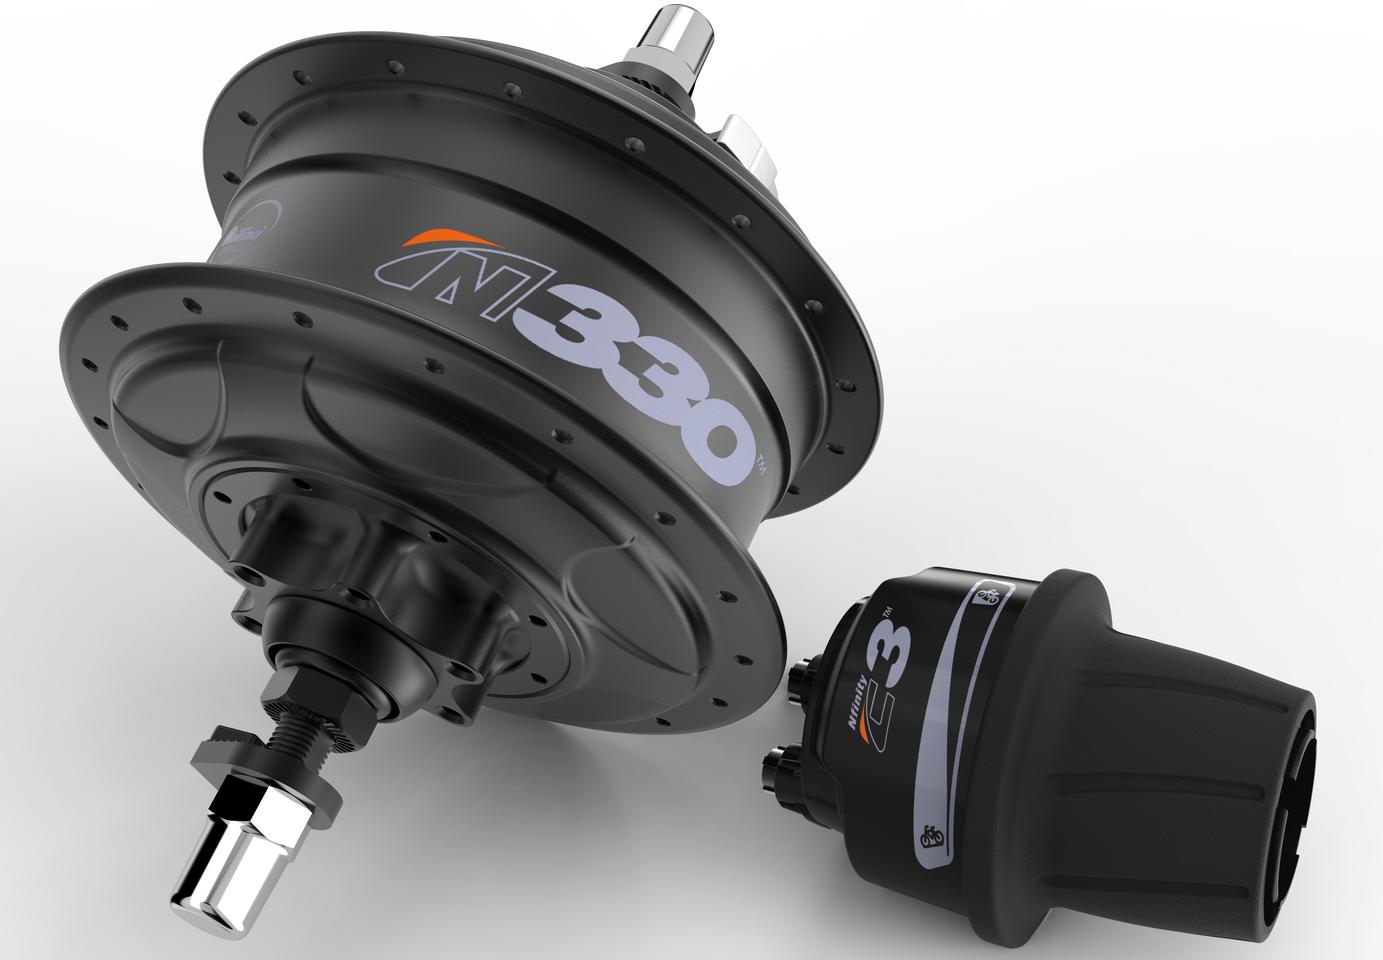 The NuVinci N330 planetary hub transmission, with its C3 controller